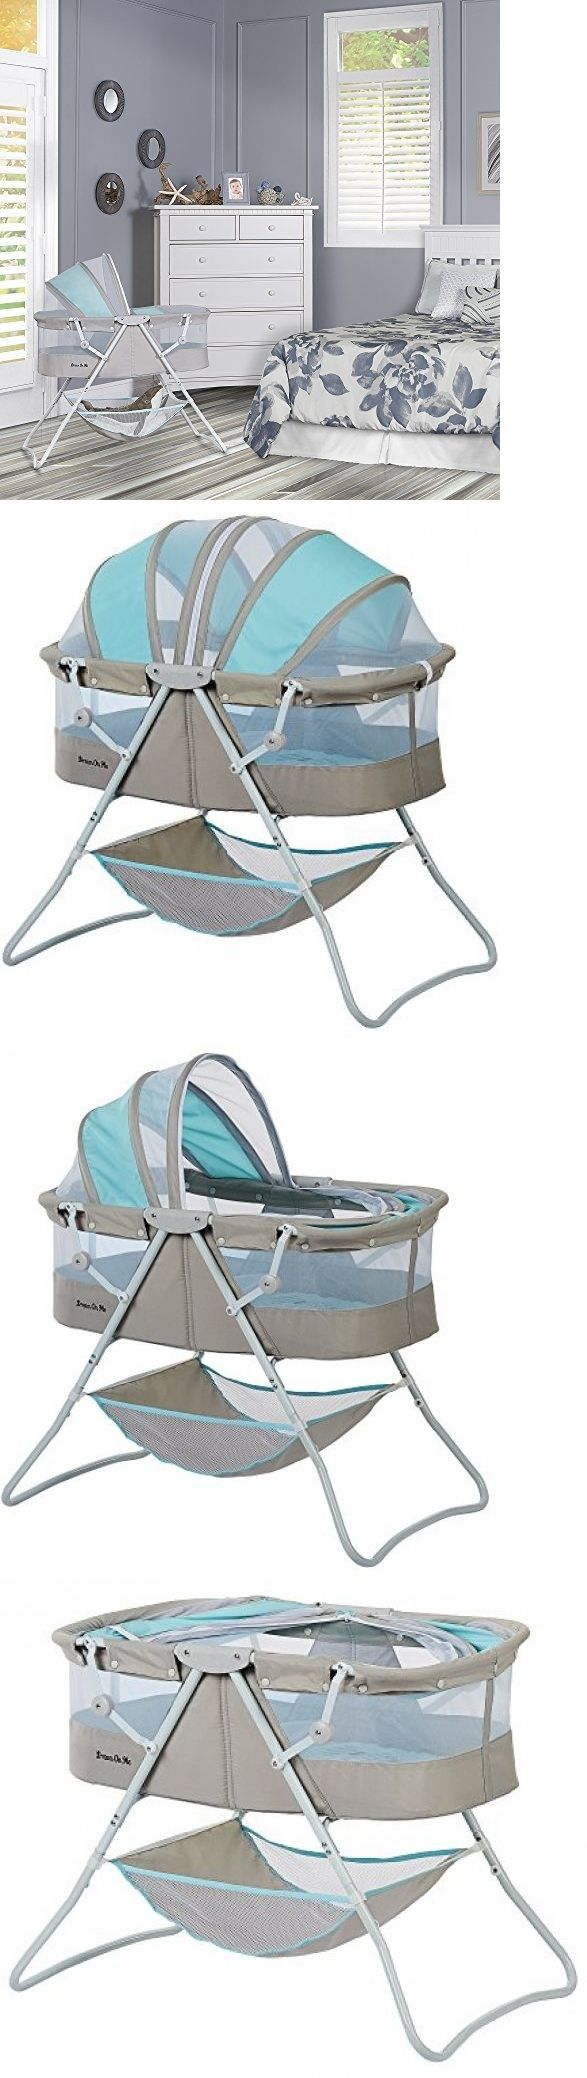 Baby Nursery: Portable Baby Bassinet Crib Infant Bed Cradle Nursery Sleeper Newborn Travel New BUY IT NOW ONLY: $76.99